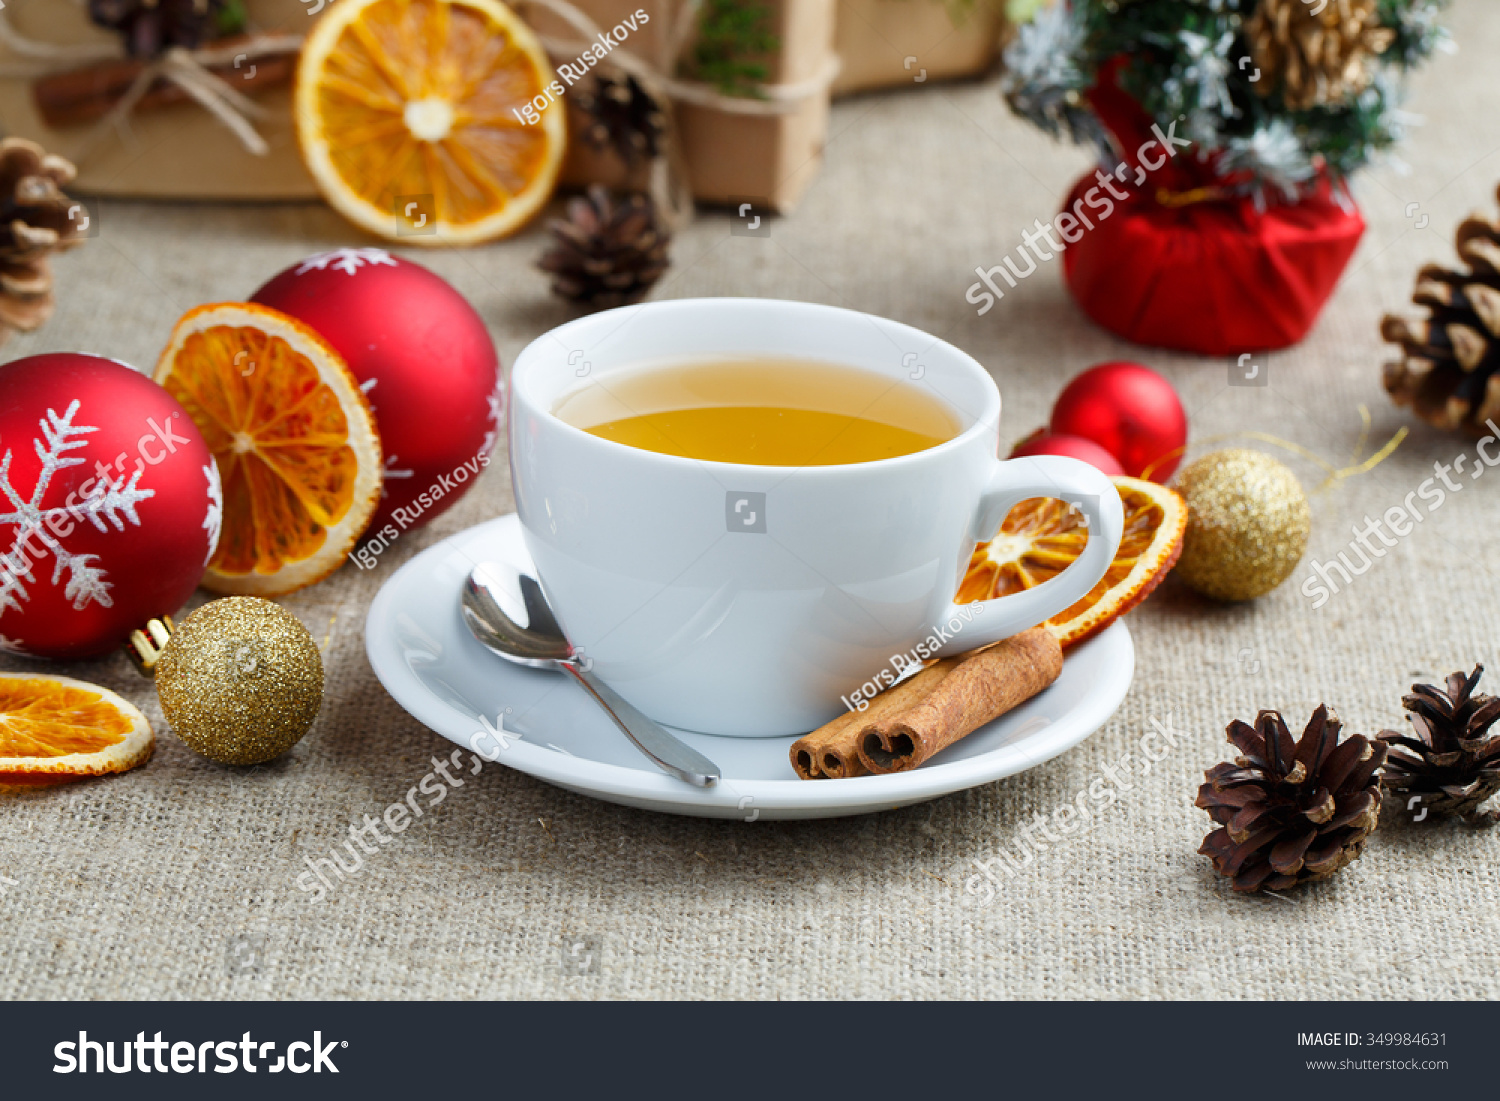 Christmas Table Cup Green Tea Gifts Stock Photo (Edit Now) 349984631 ...